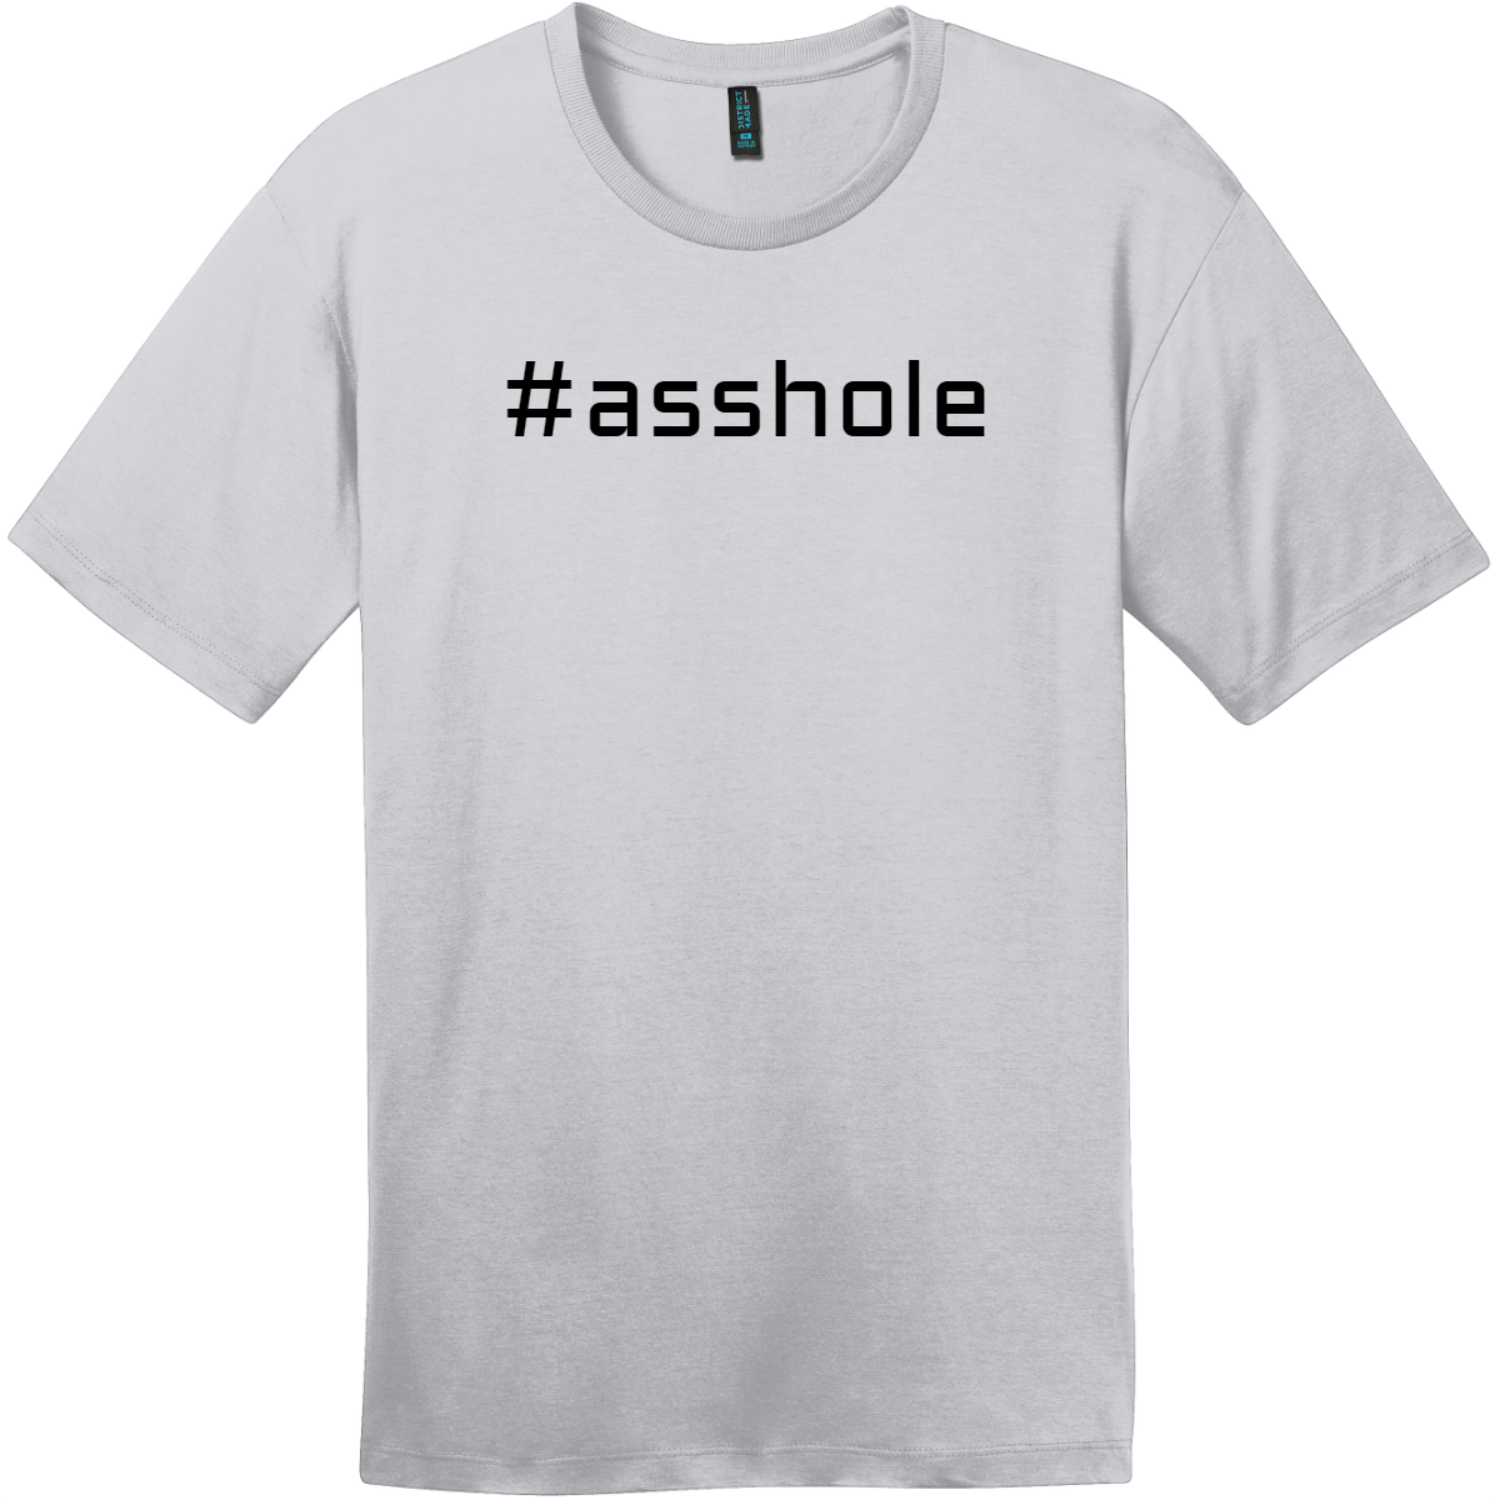 Hashtag Asshole T-Shirt Silver District Perfect Weight Tee DT104